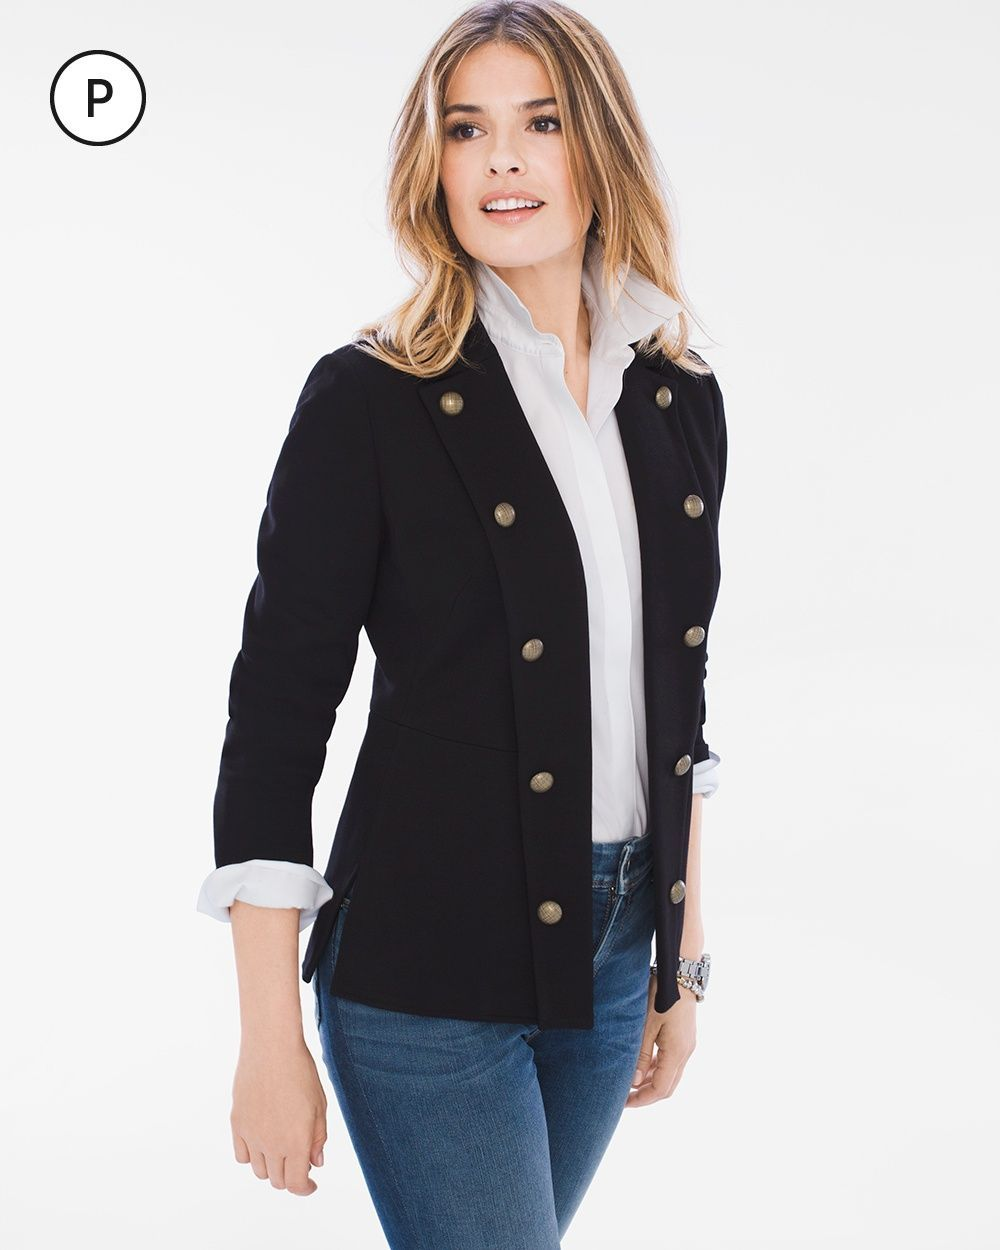 Nautical blazer | Passion for Fashion | Pinterest | Style, Outfits and  Fashion